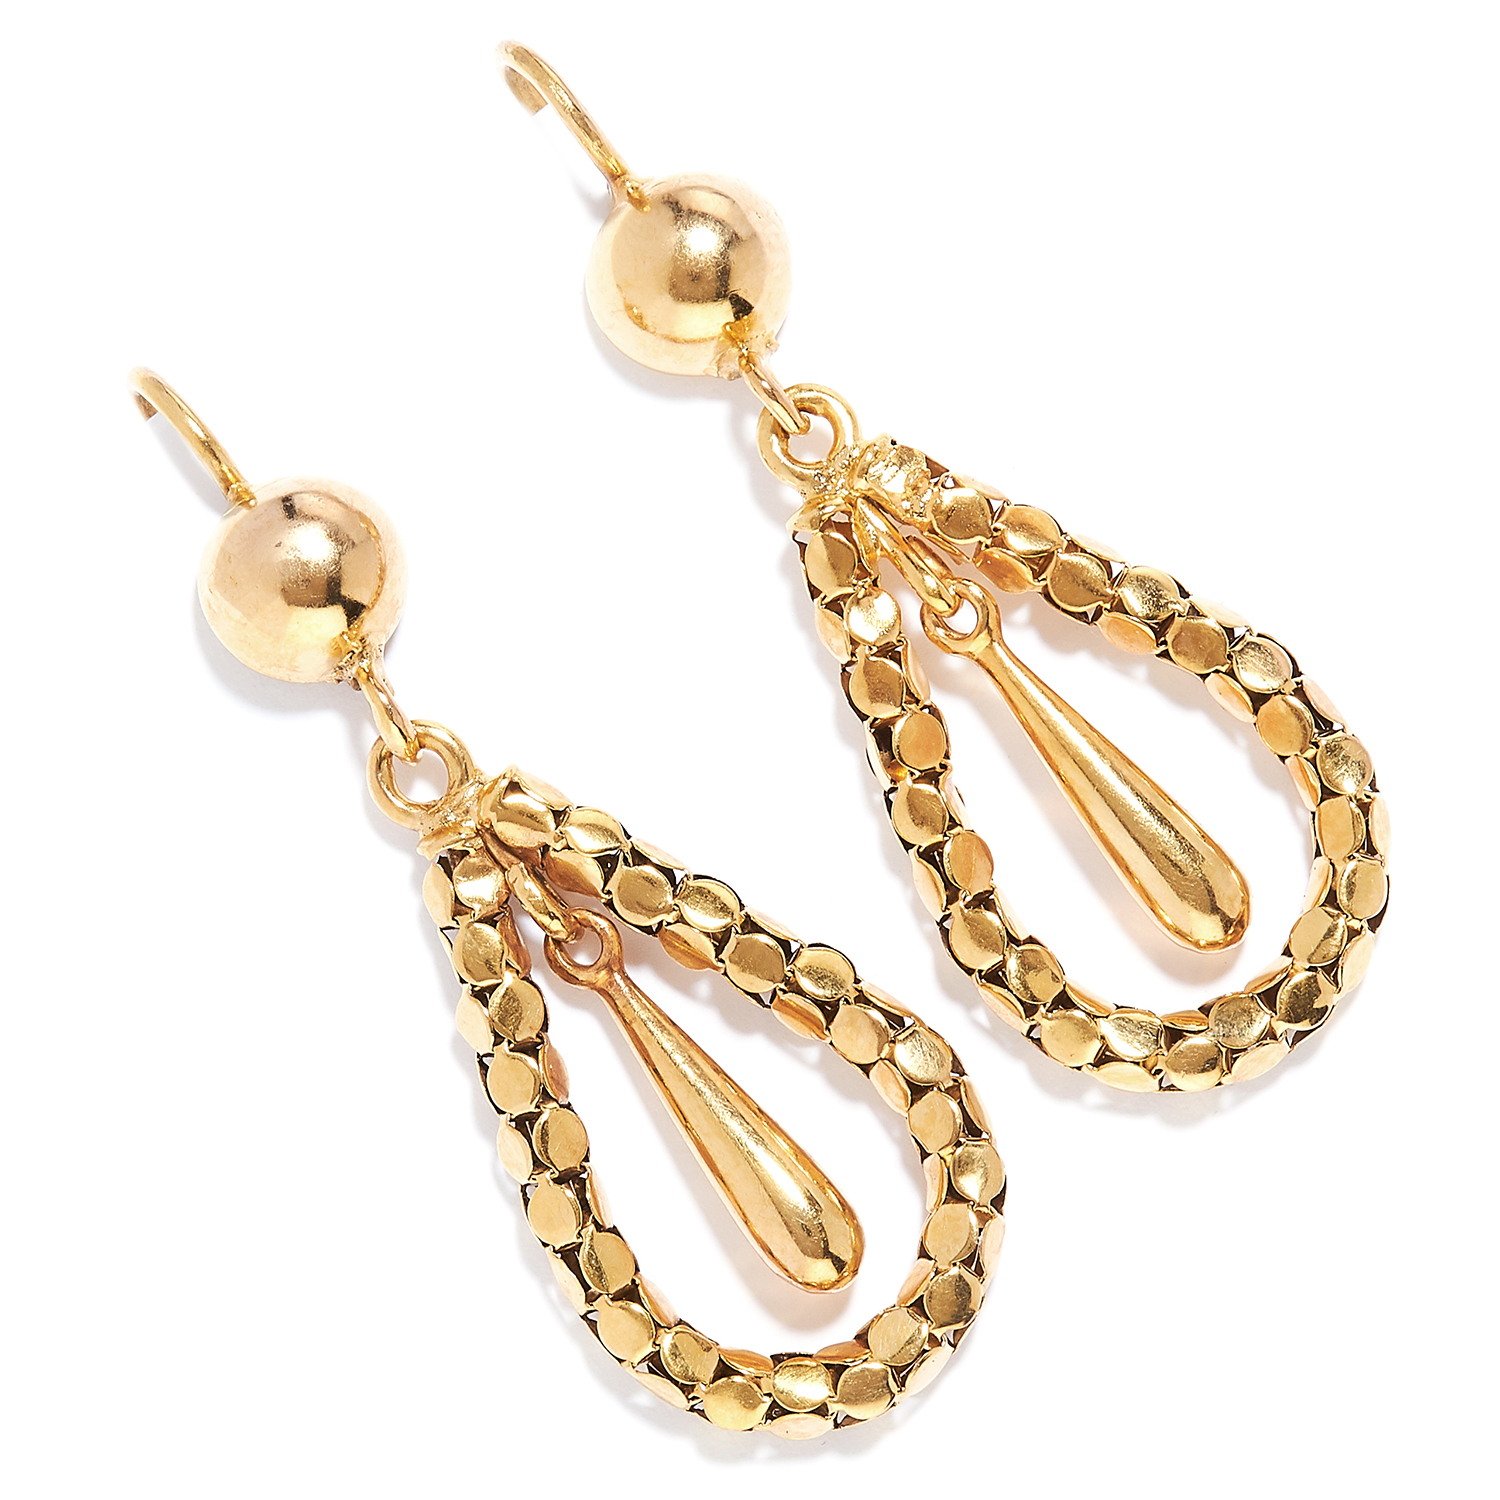 Los 16 - ANTIQUE GOLD DROP EARRINGS, 19TH CENTURY in high carat yellow gold, designed as a gold drop,